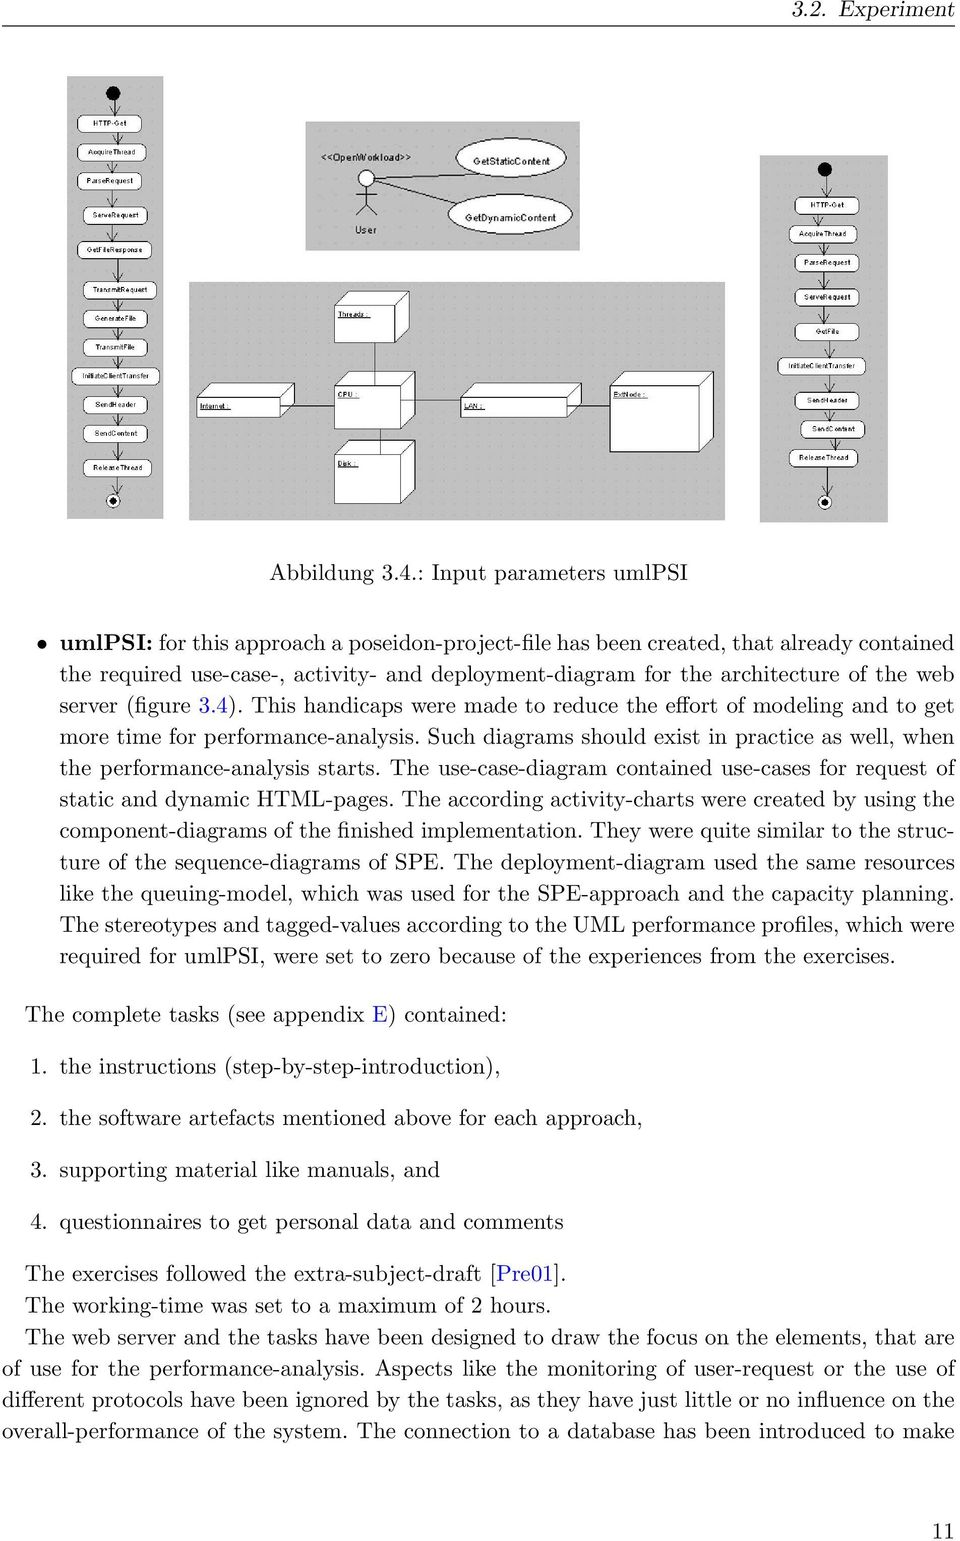 the web server (figure 3.4). This handicaps were made to reduce the effort of modeling and to get more time for performance-analysis.